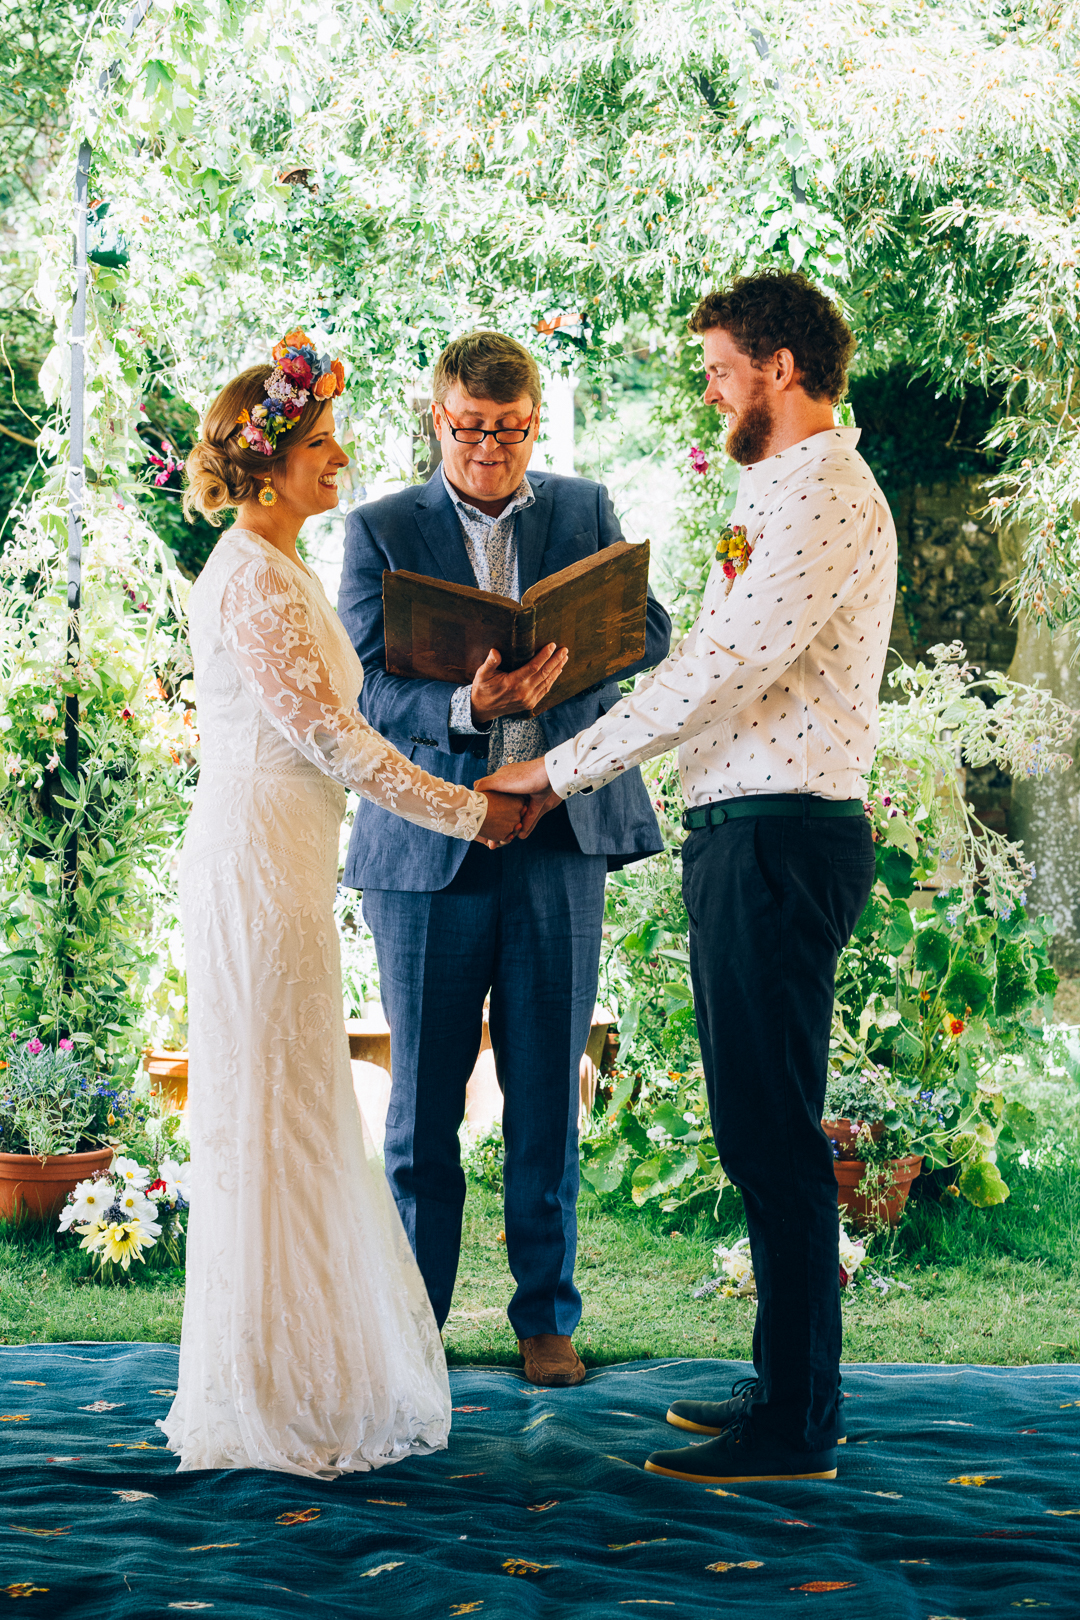 Bride and groom outdoor humanist ceremony image